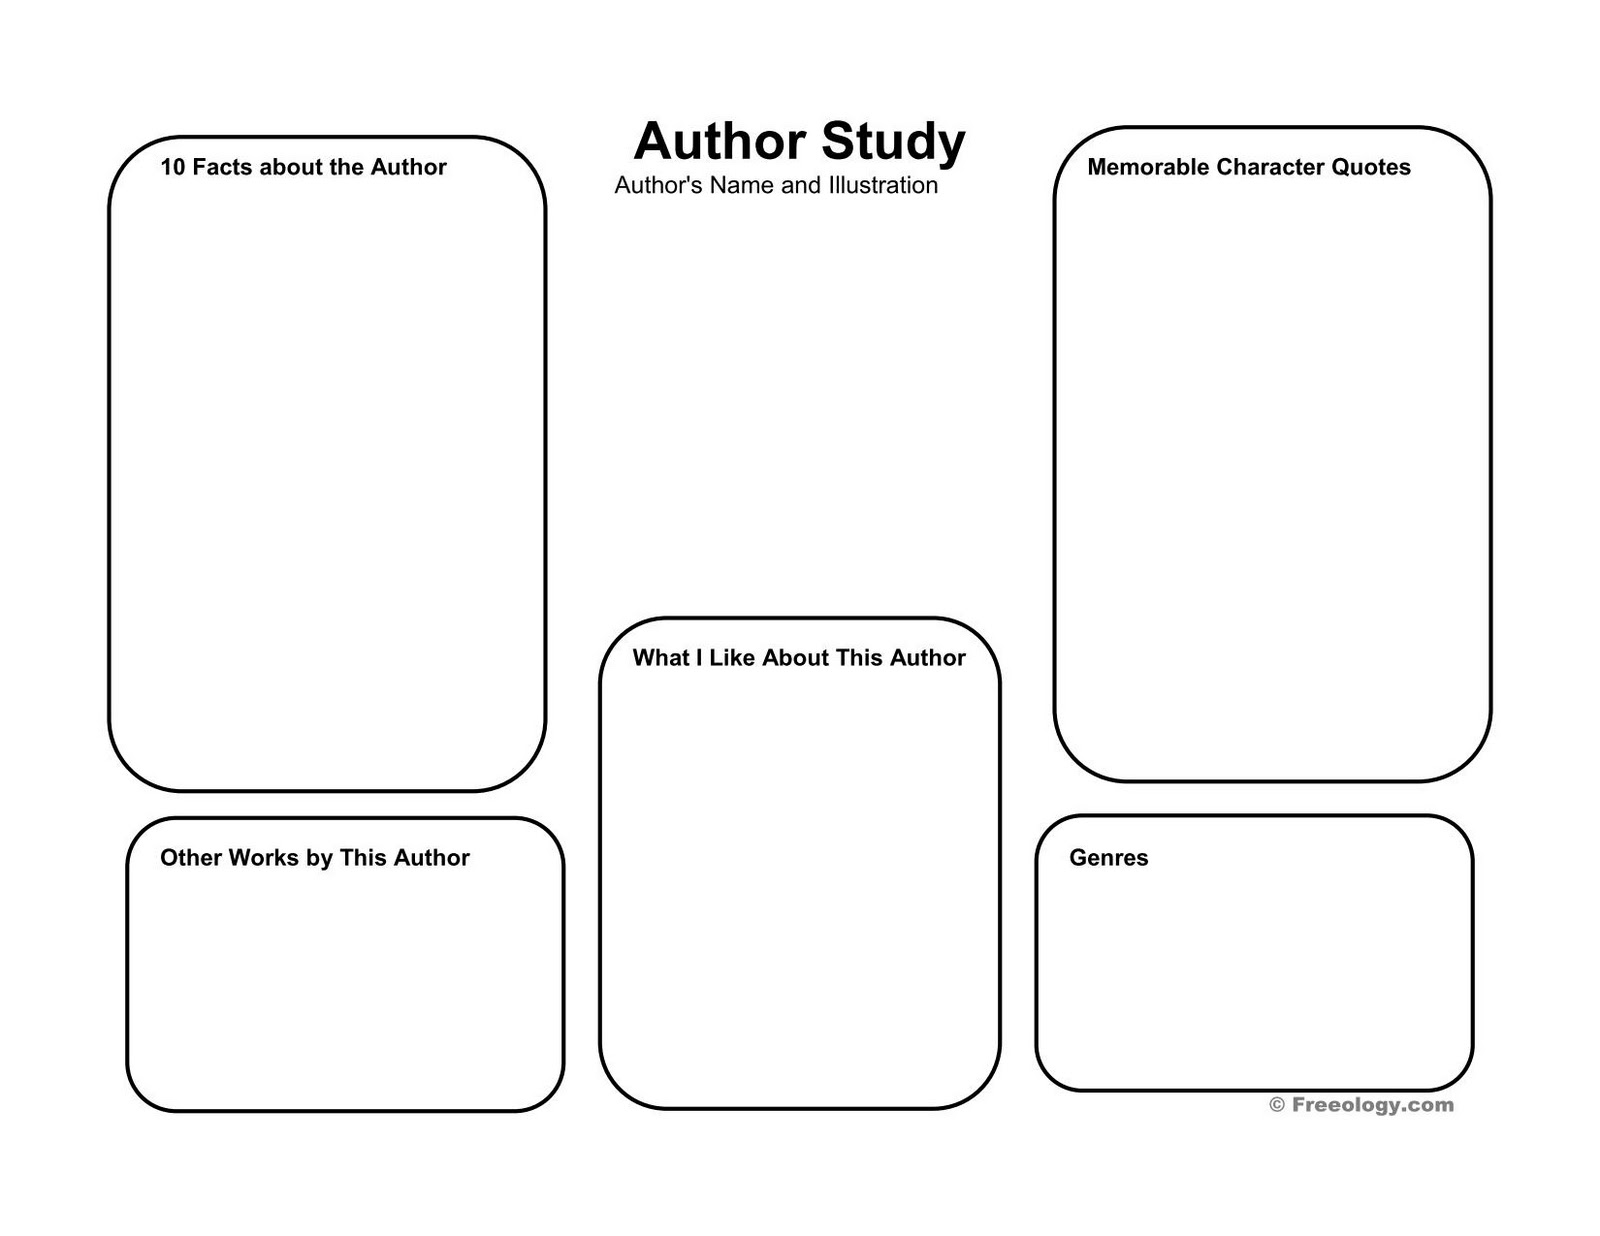 Author Study Worksheet (It focuses on the author's work)